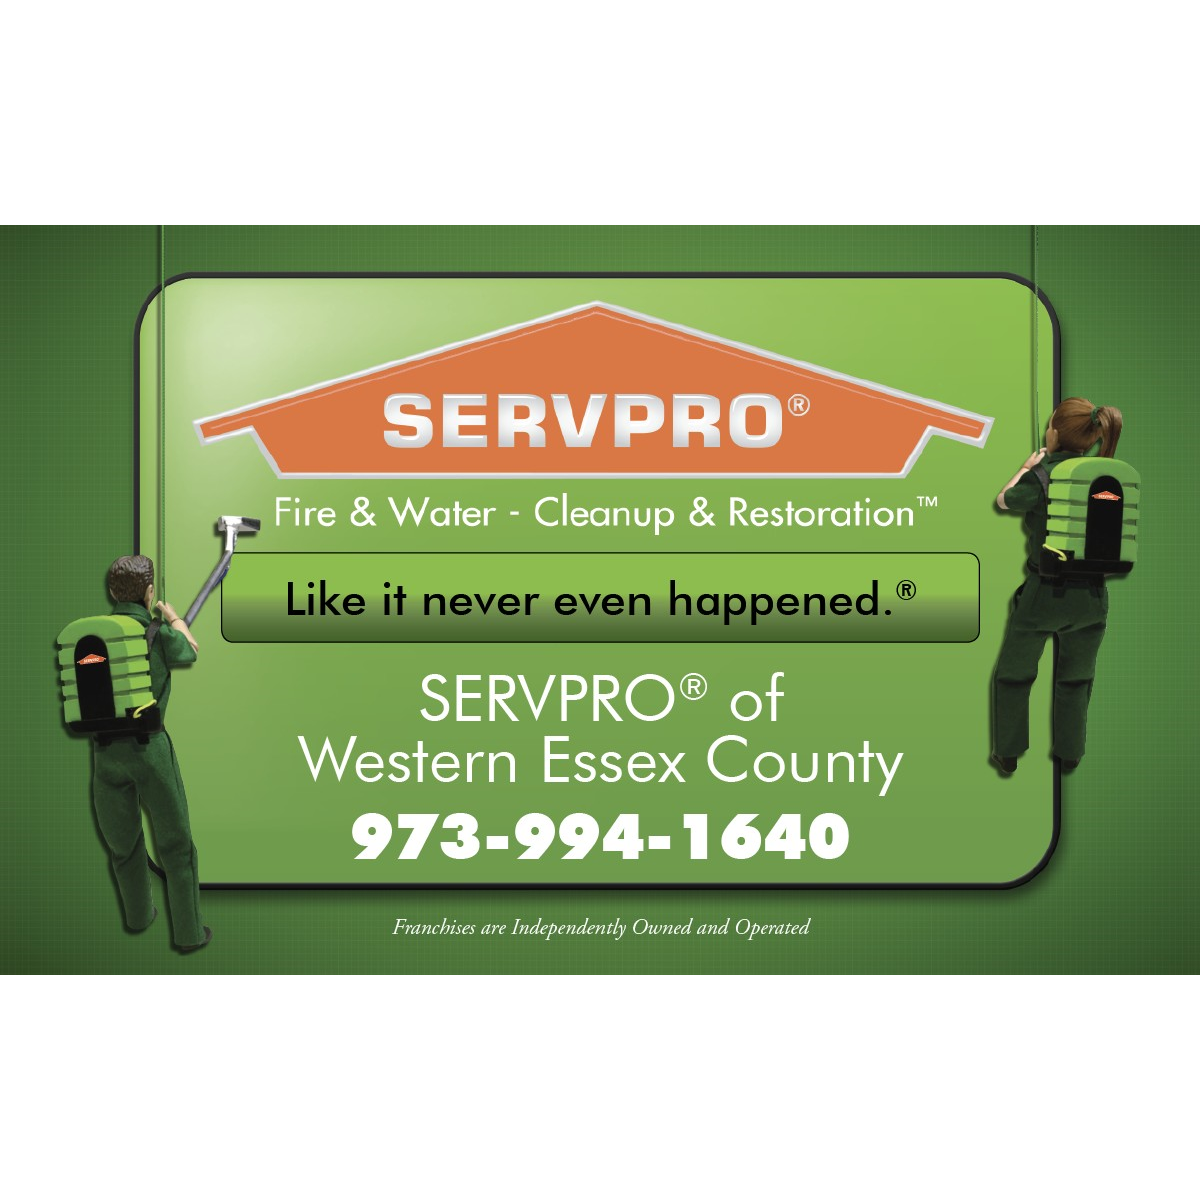 Servpro of Western Essex County image 1